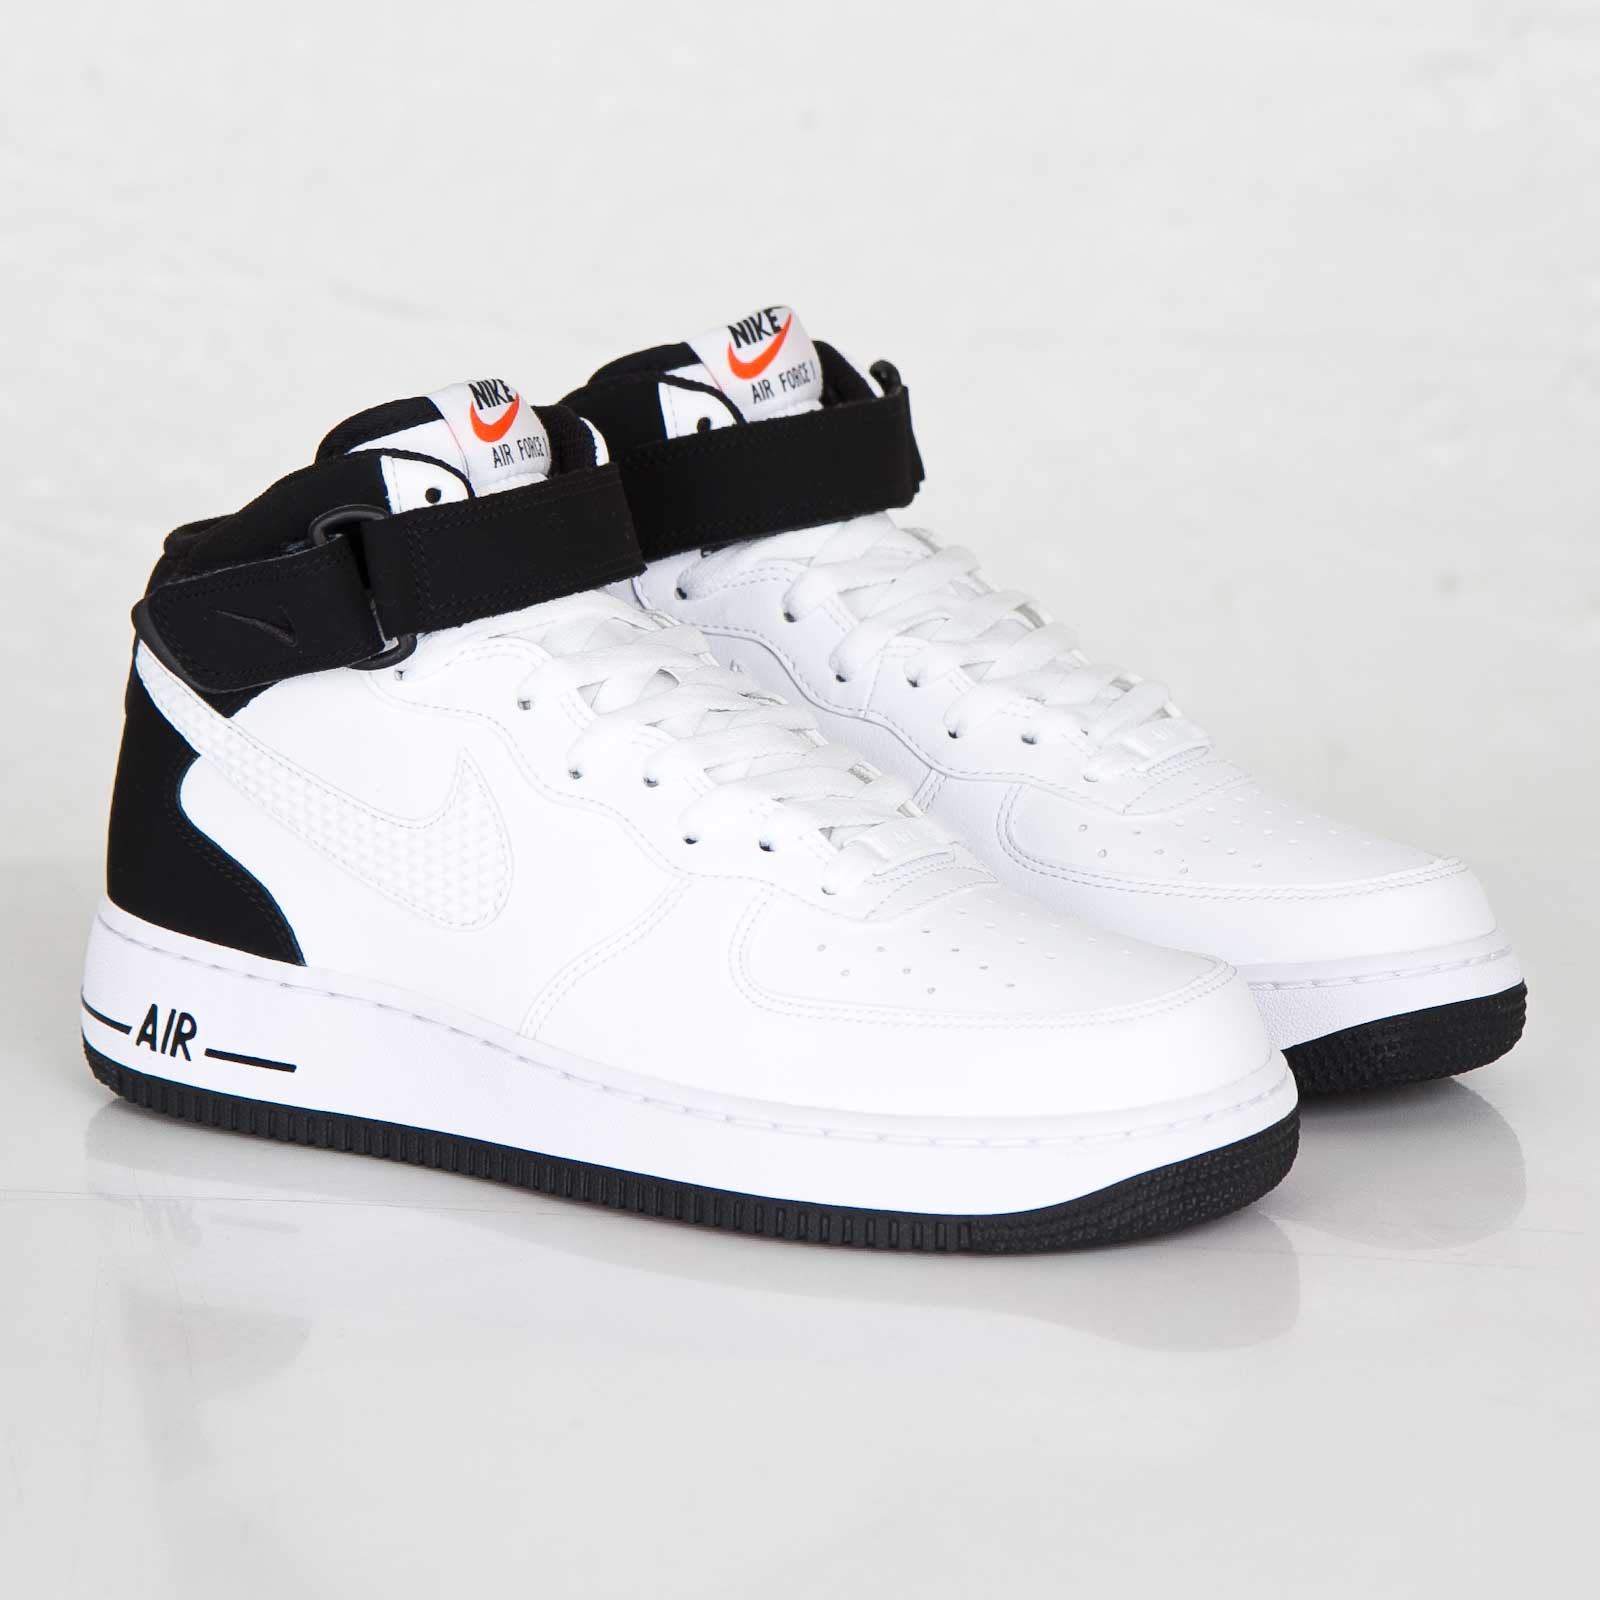 Nike Air Force 1 Mid 07 - 315123-124